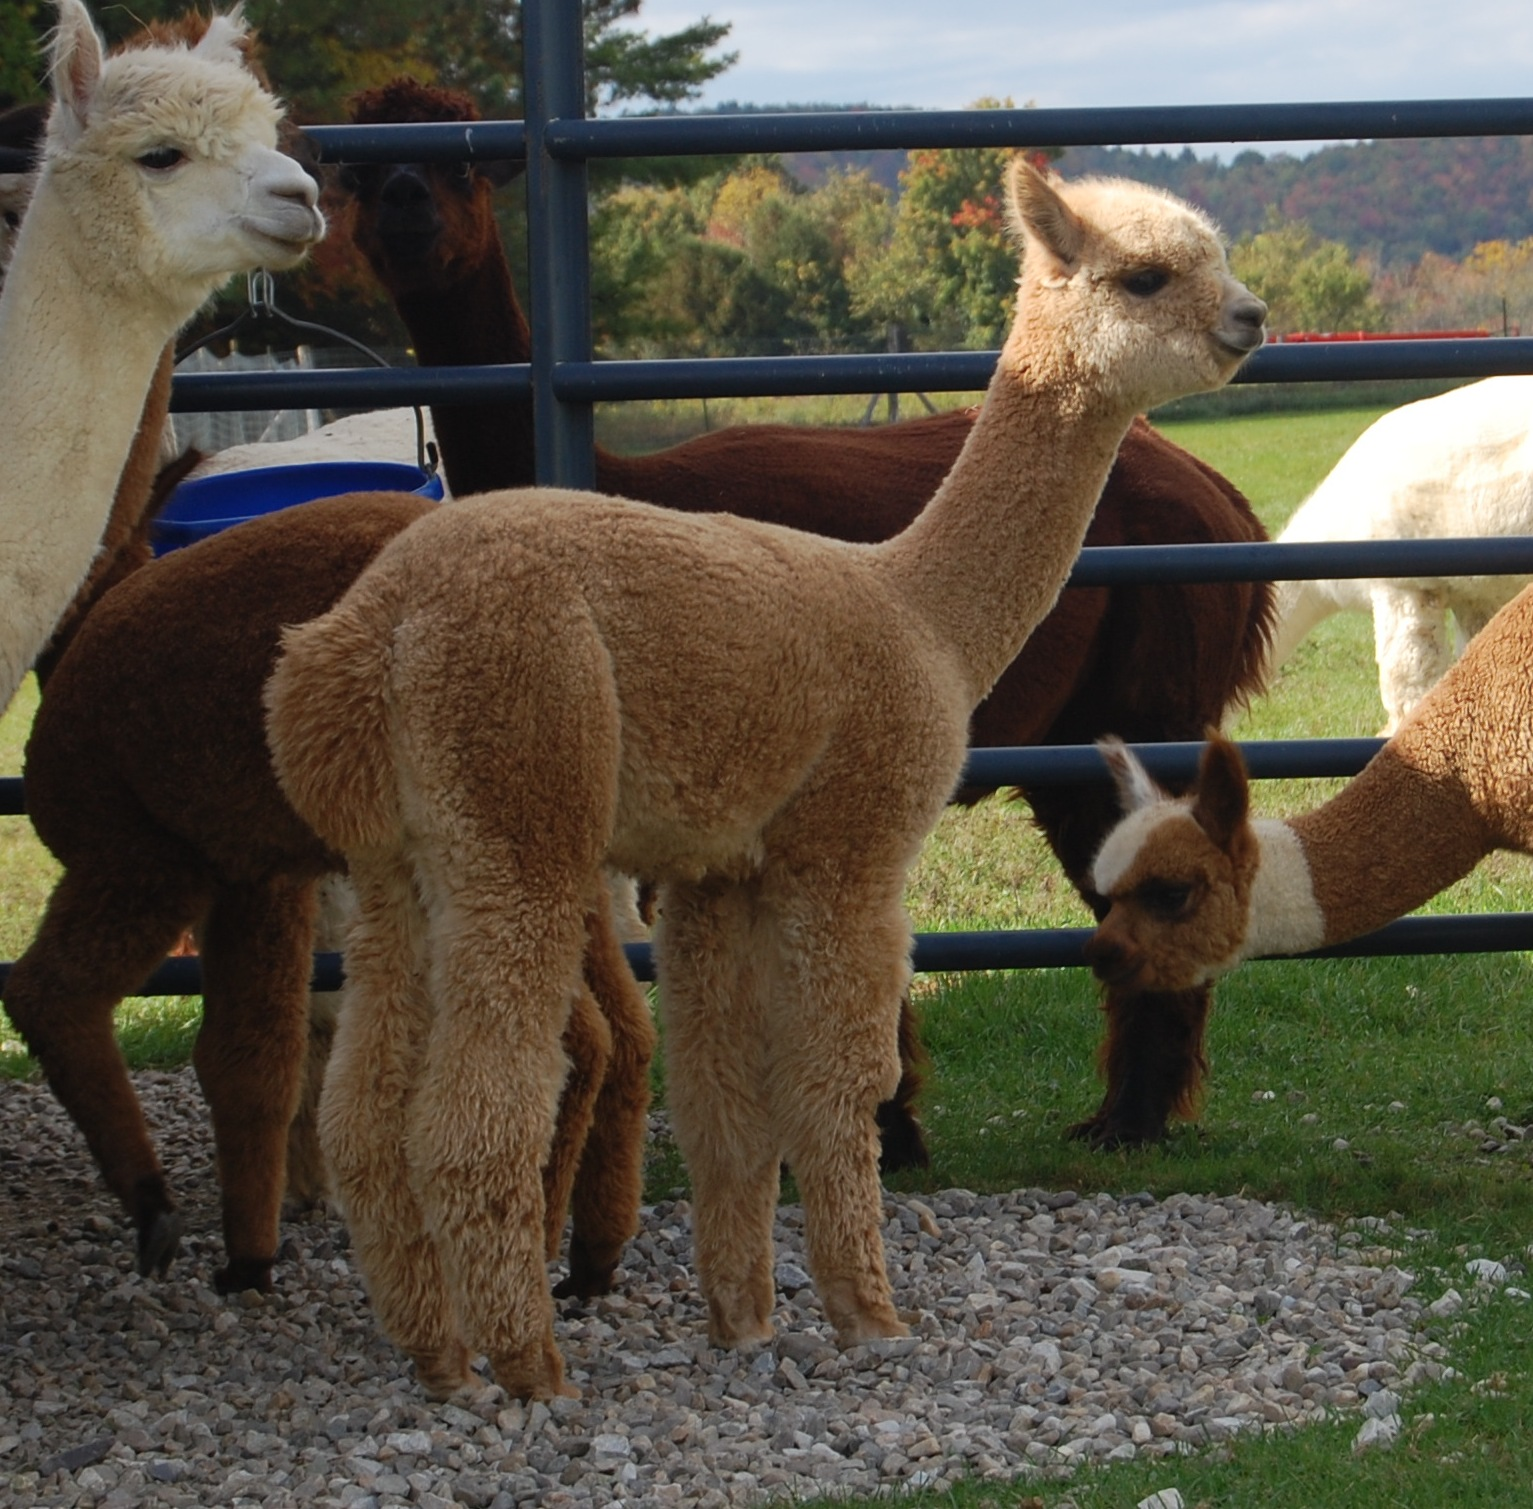 Archangel s essie maple view farm alpacas breeders of for Alpaca view farm cuisine bangkok